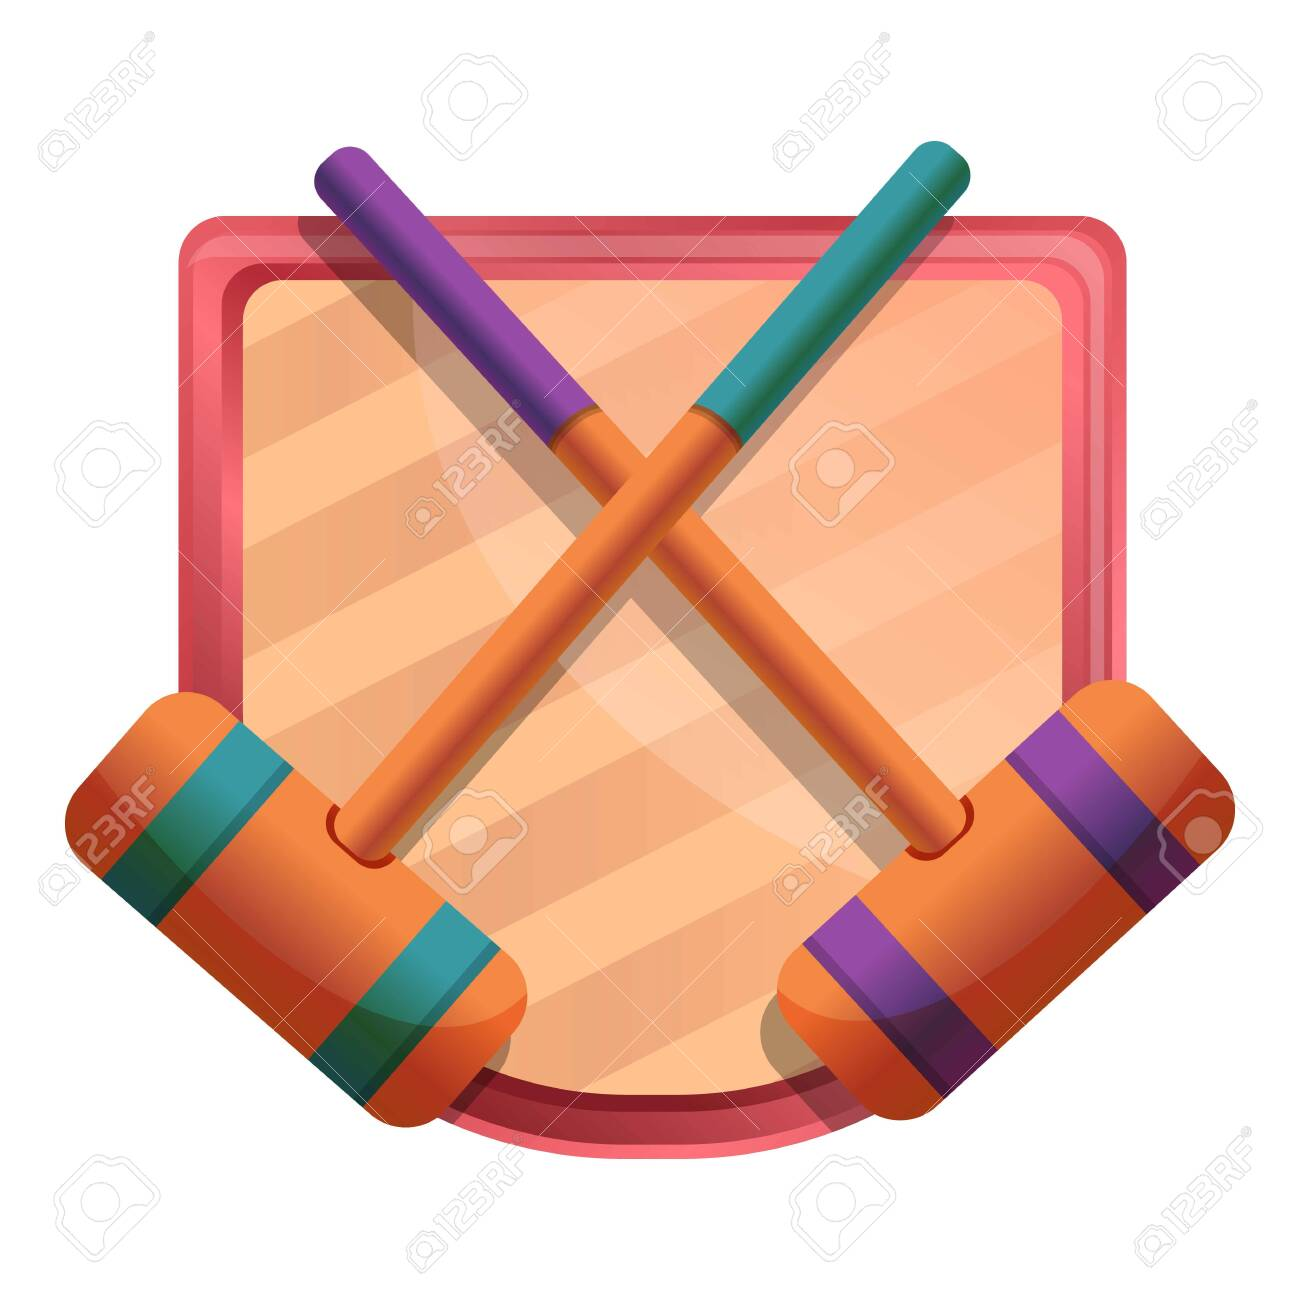 Croquet Mallet Icon Cartoon Of Croquet Mallet Vector Icon For 1300x1300